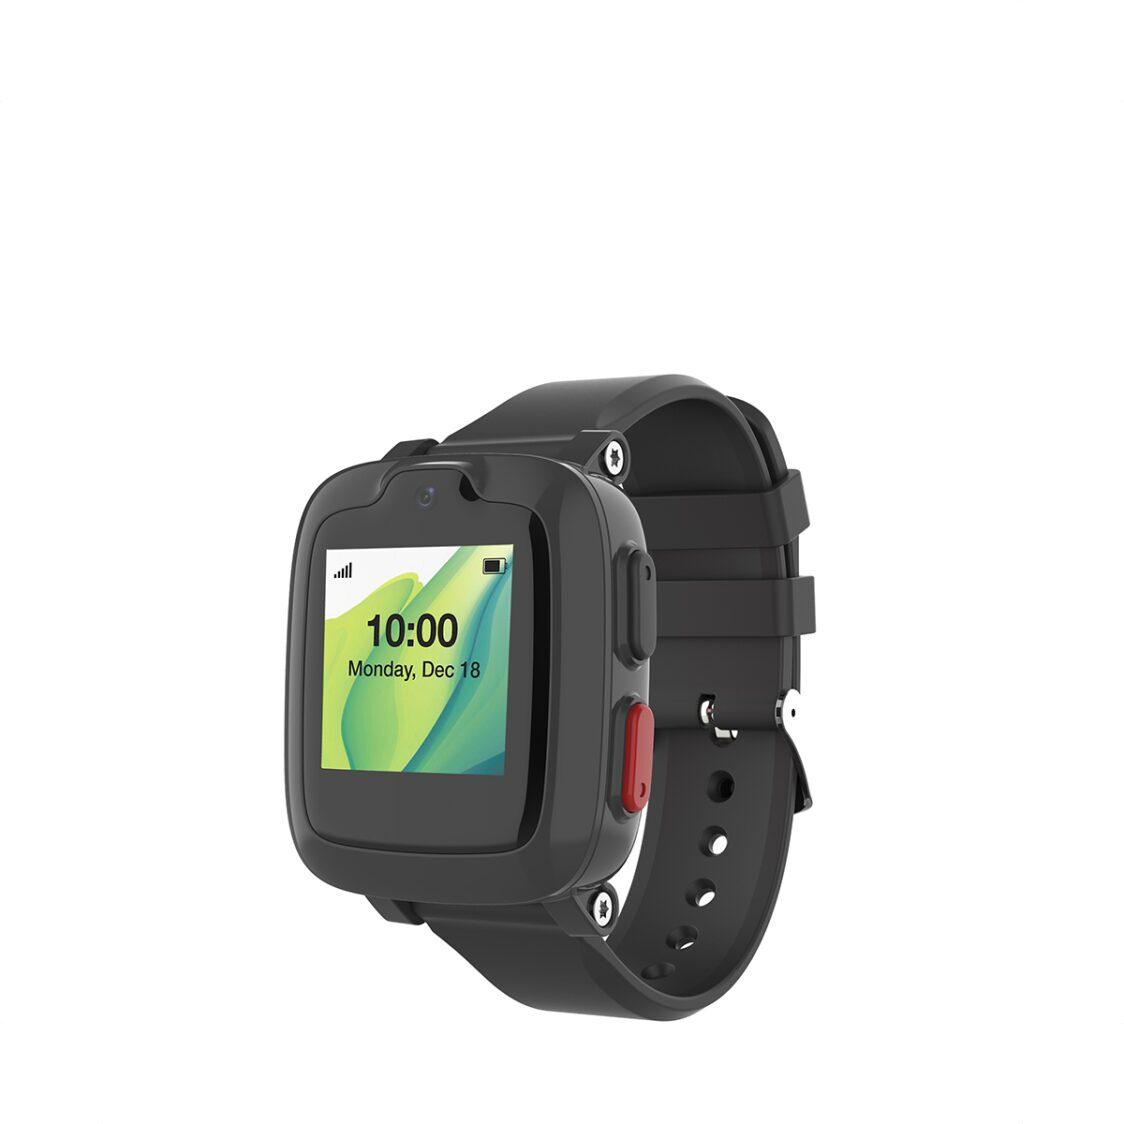 myFirst Fone S2 3G GPS Watchphone With Video Call and Voice Call